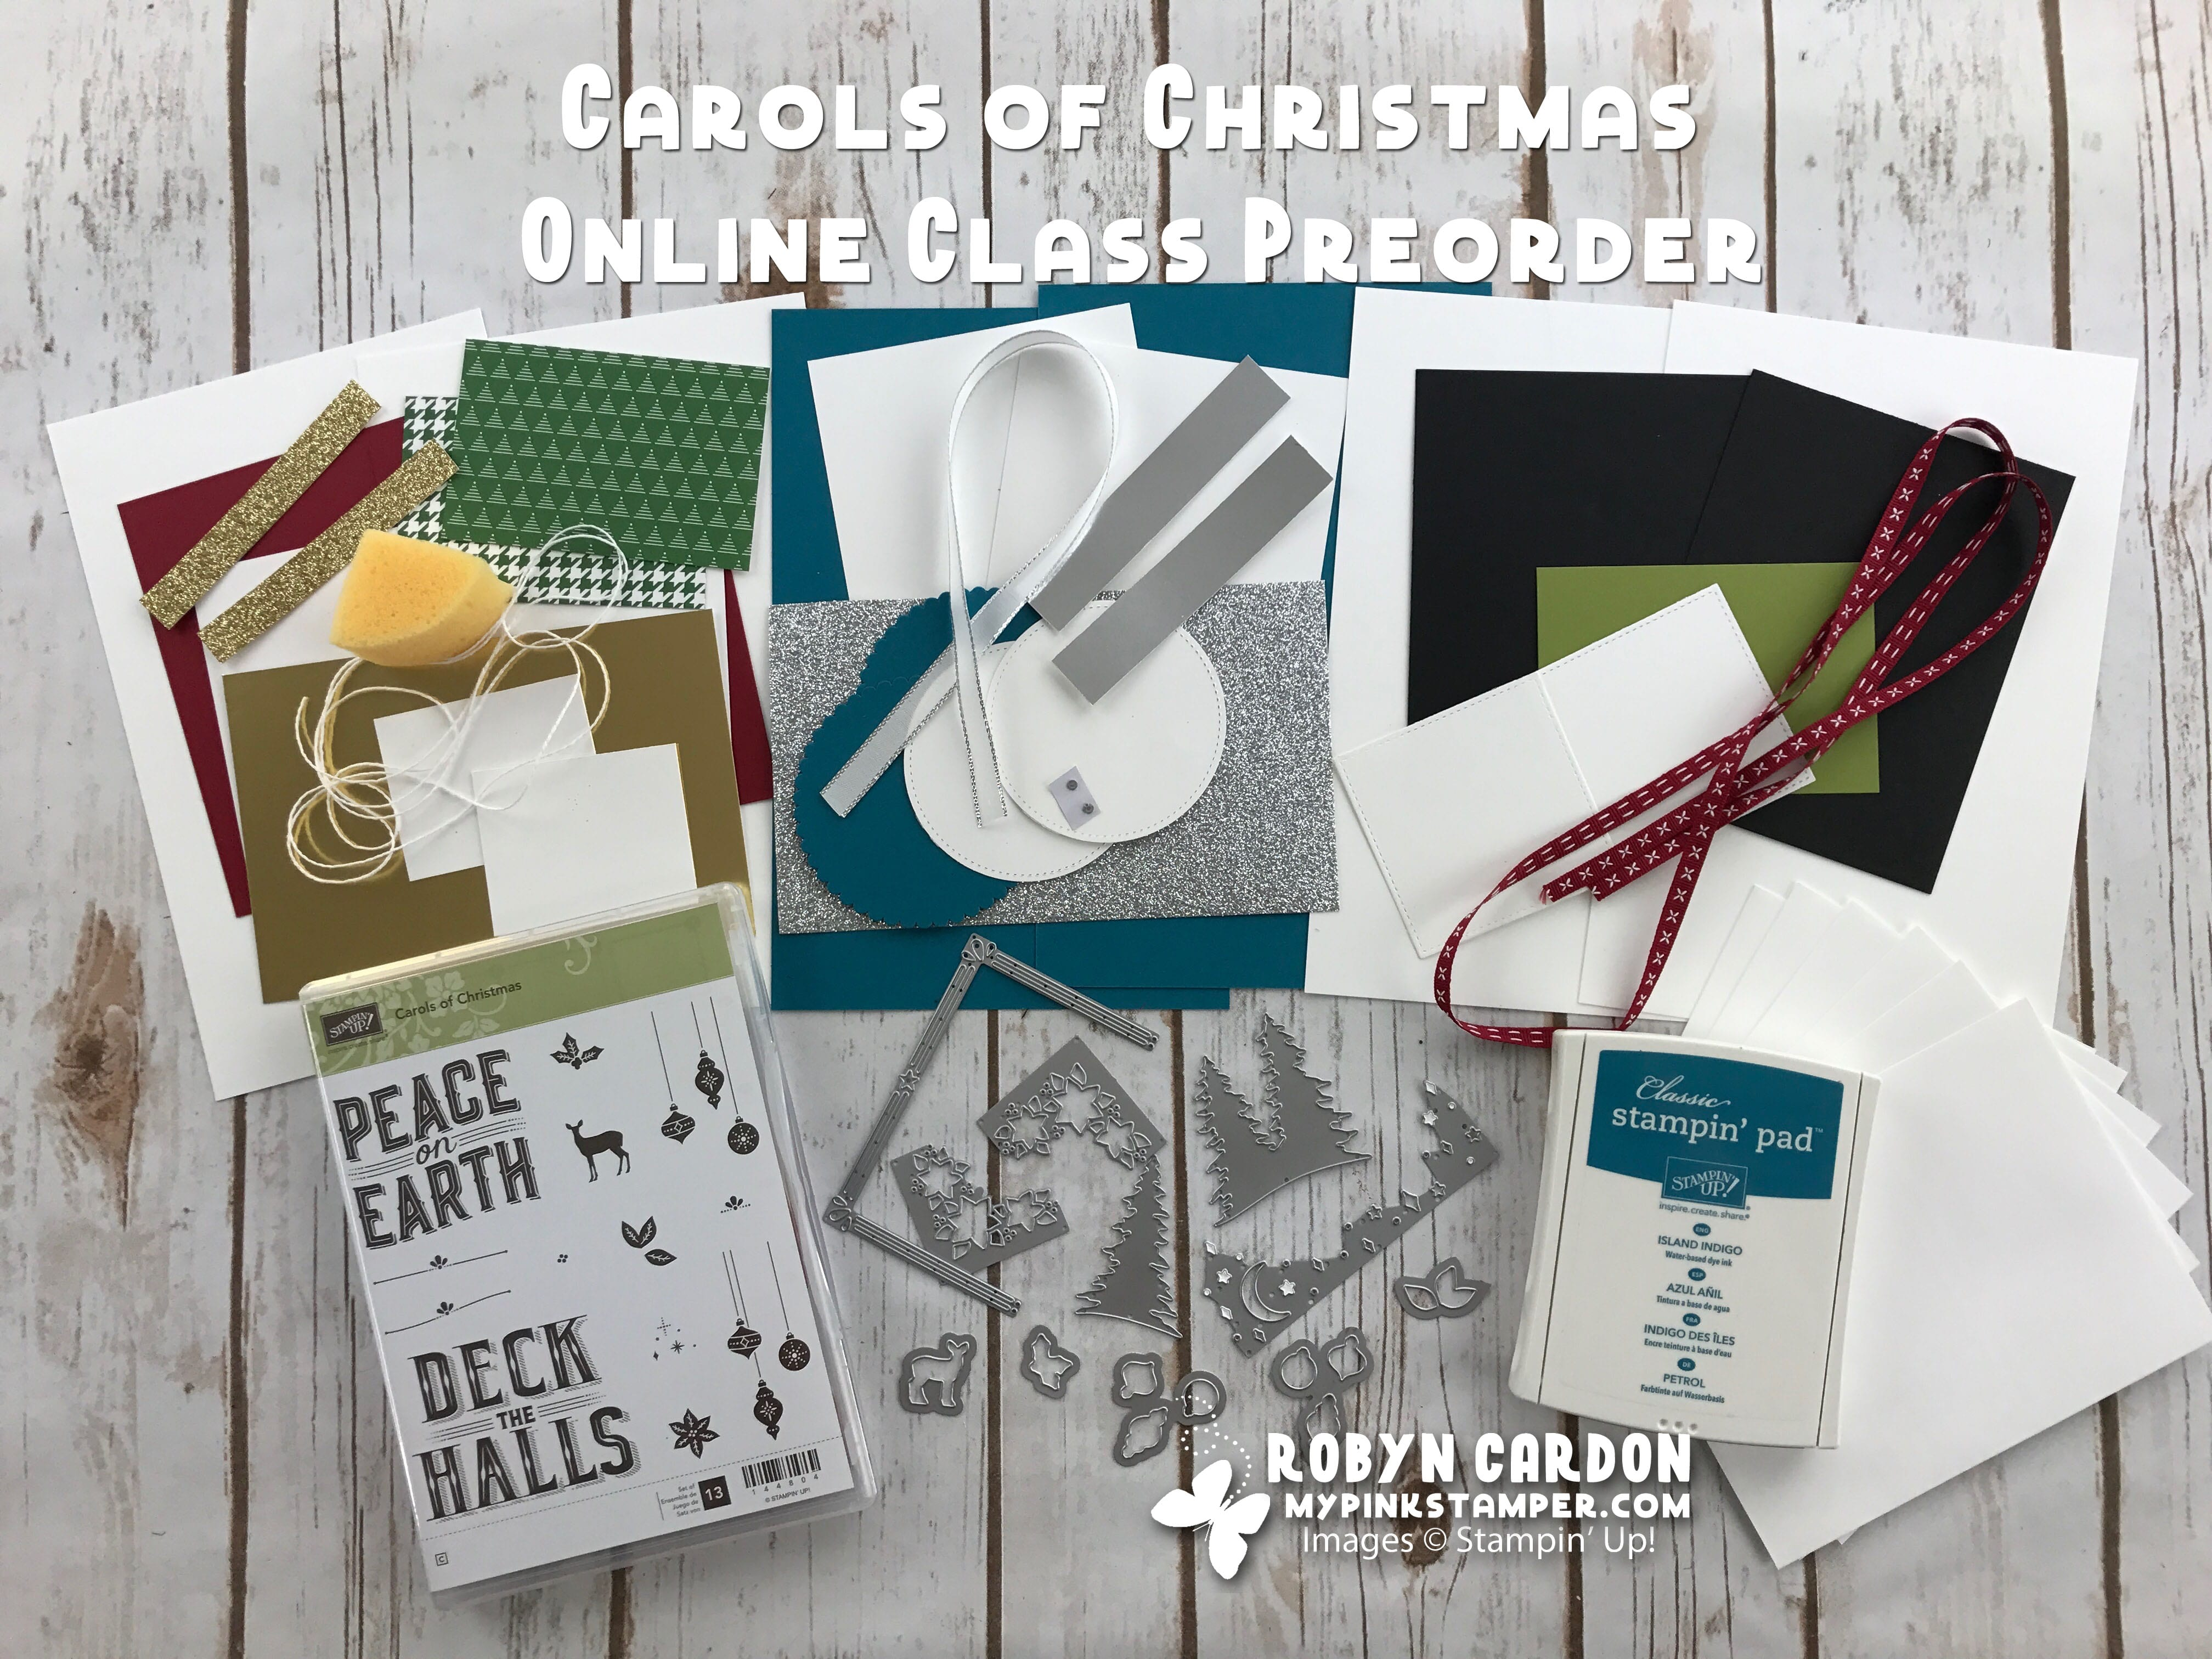 Carols of Christmas Online Class Preorder